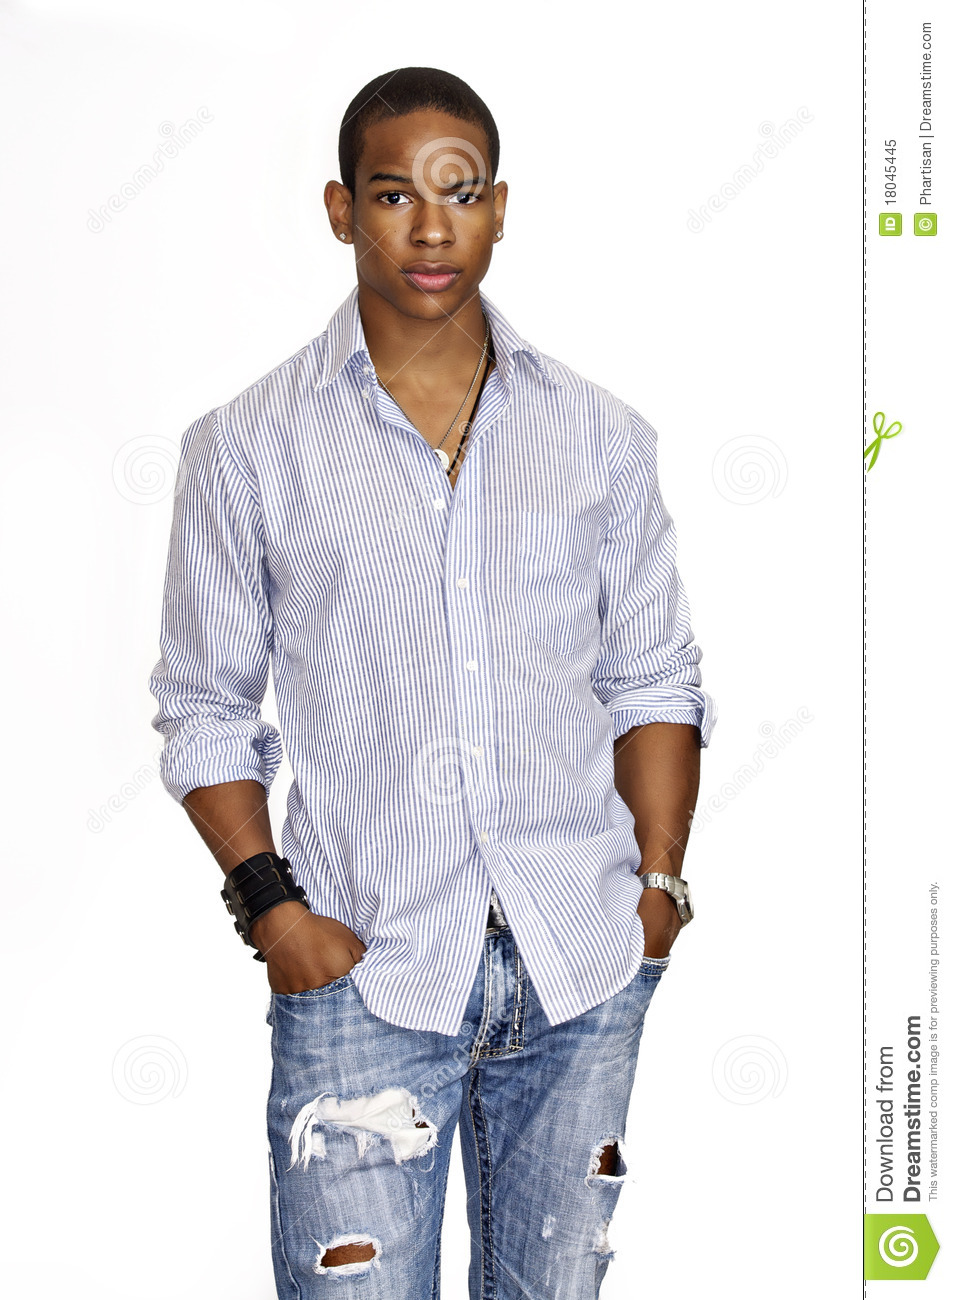 Royalty Free Stock Images Young African American Male